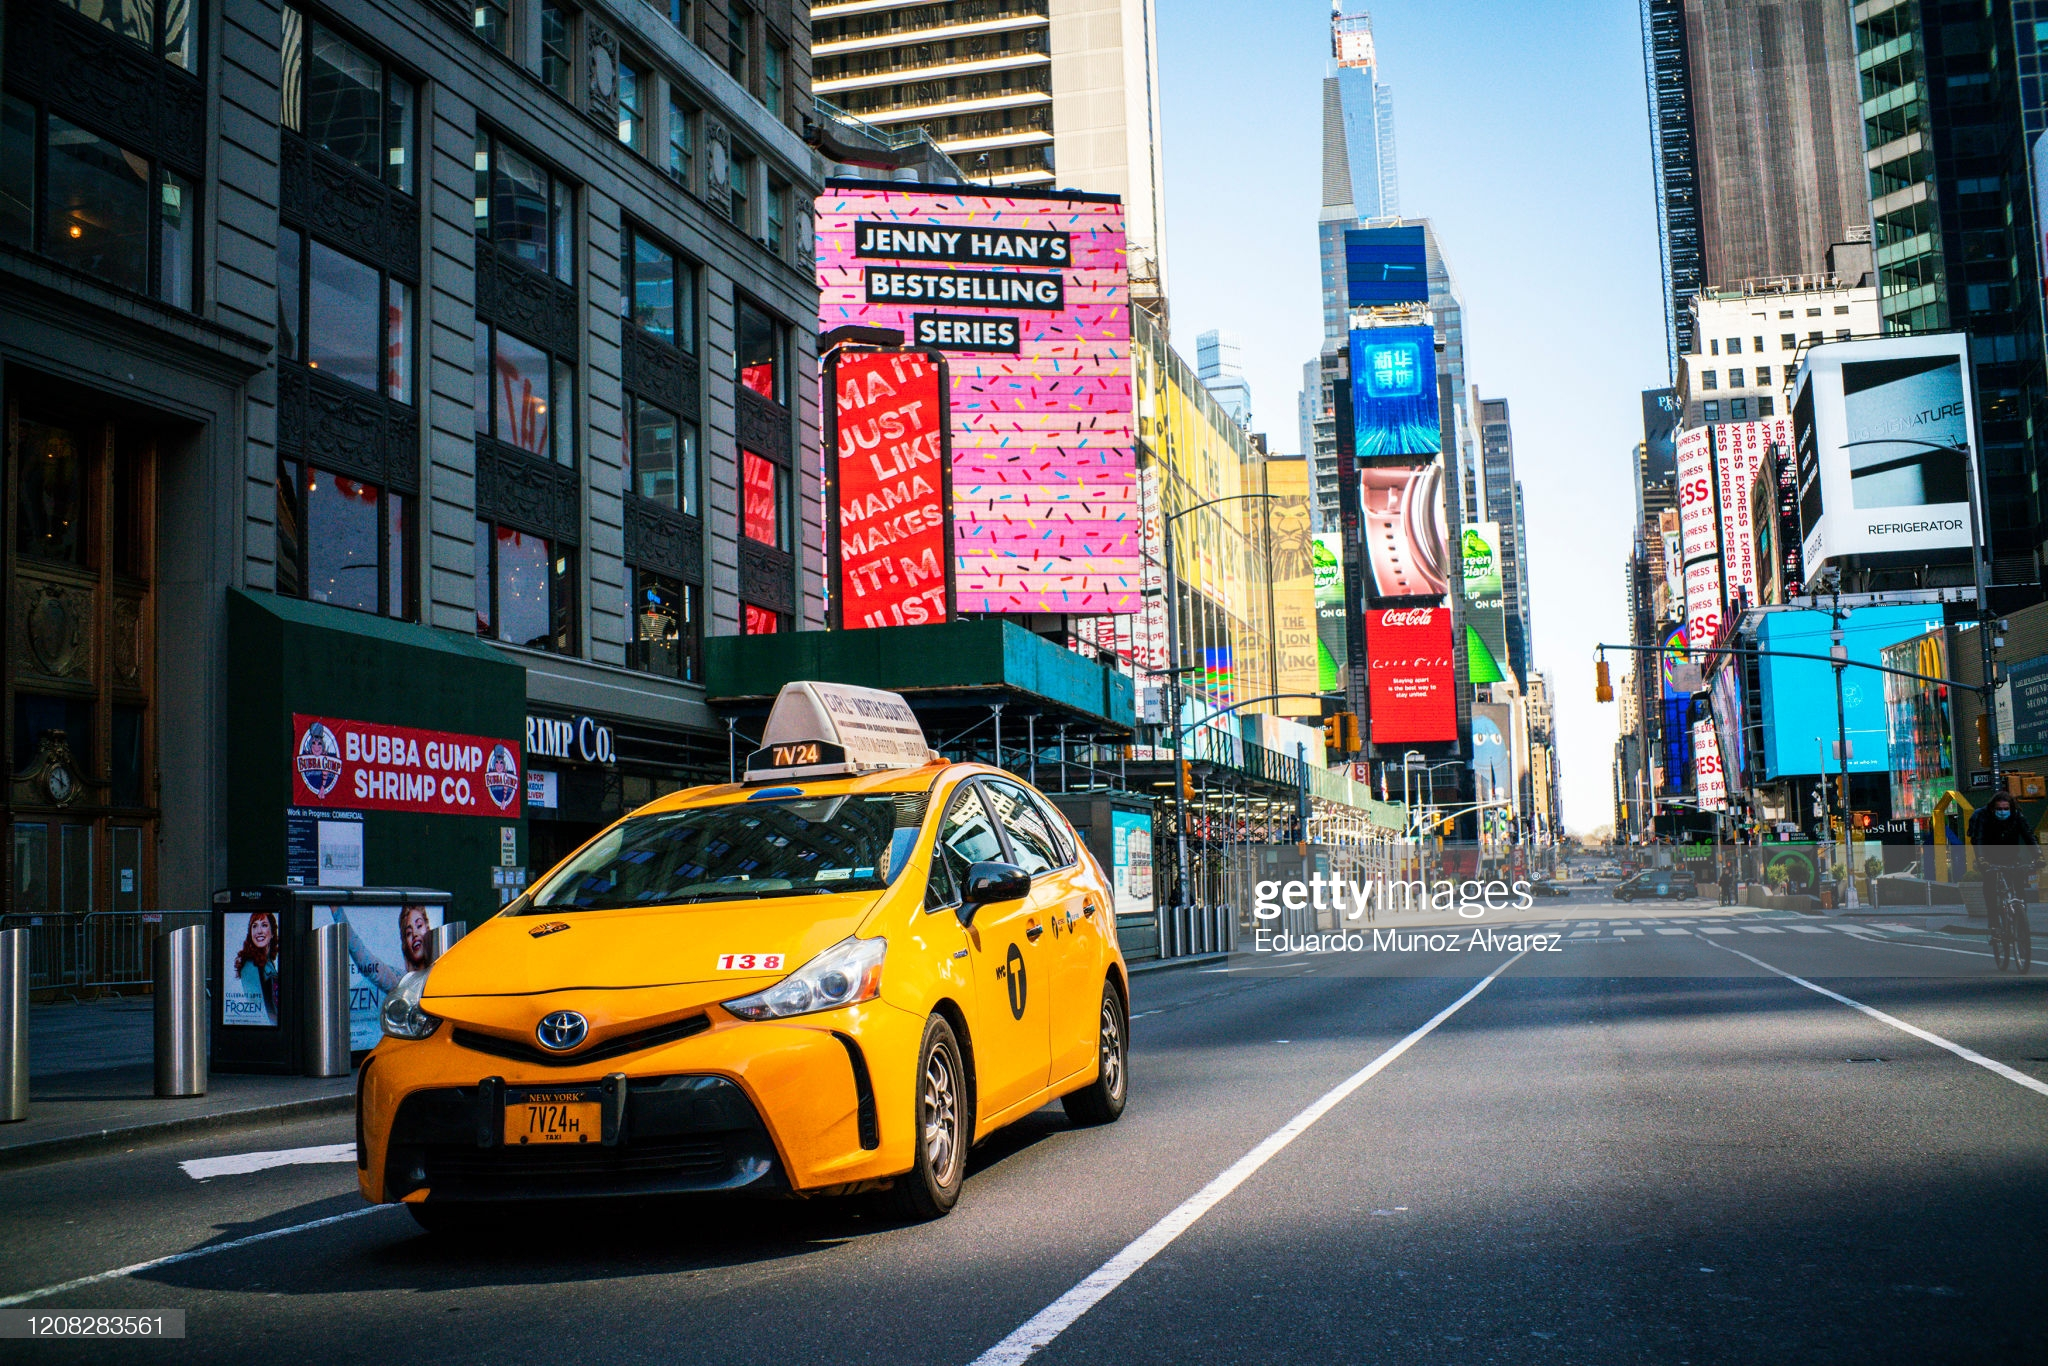 NEW YORK, NY - MARCH 26: A taxi drives down Times Square on March 26, 2020 in New York City. Most cabdrivers are fearful of being exposed to the coronavirus that they prefer to stay home with no way to pay bills, while across the country schools, businesses and places of work have either been shut down or are restricting hours of operation as health officials try to slow the spread of COVID-19. (Photo by Eduardo Munoz Alvarez/Getty Images)